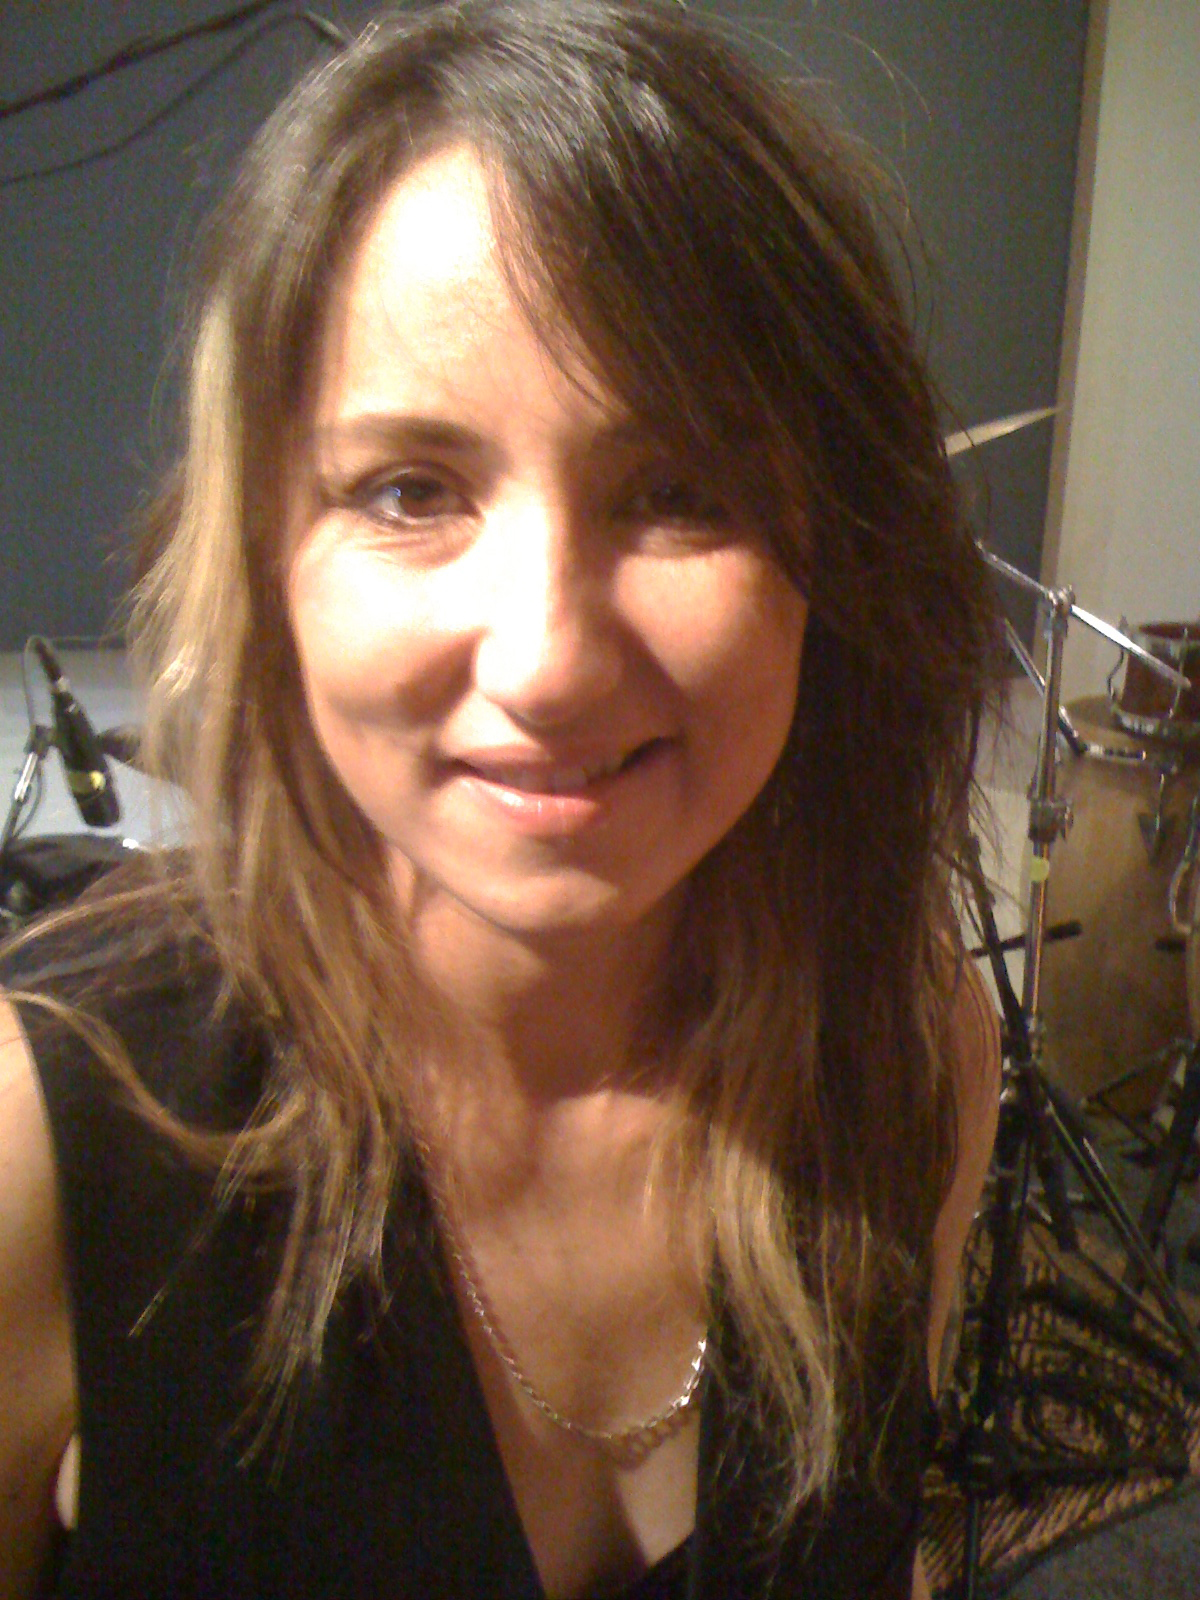 Hanging out with KT Tunstall